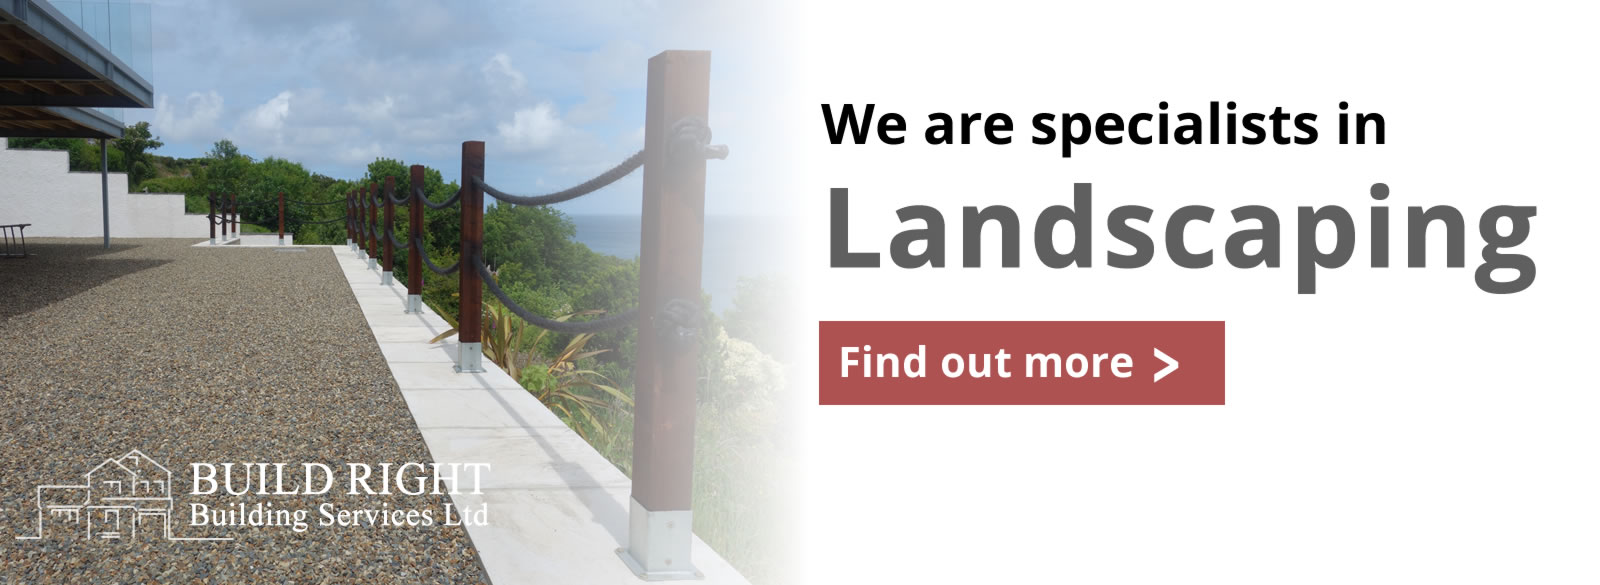 Build Right Building Services Ltd - Landscaping